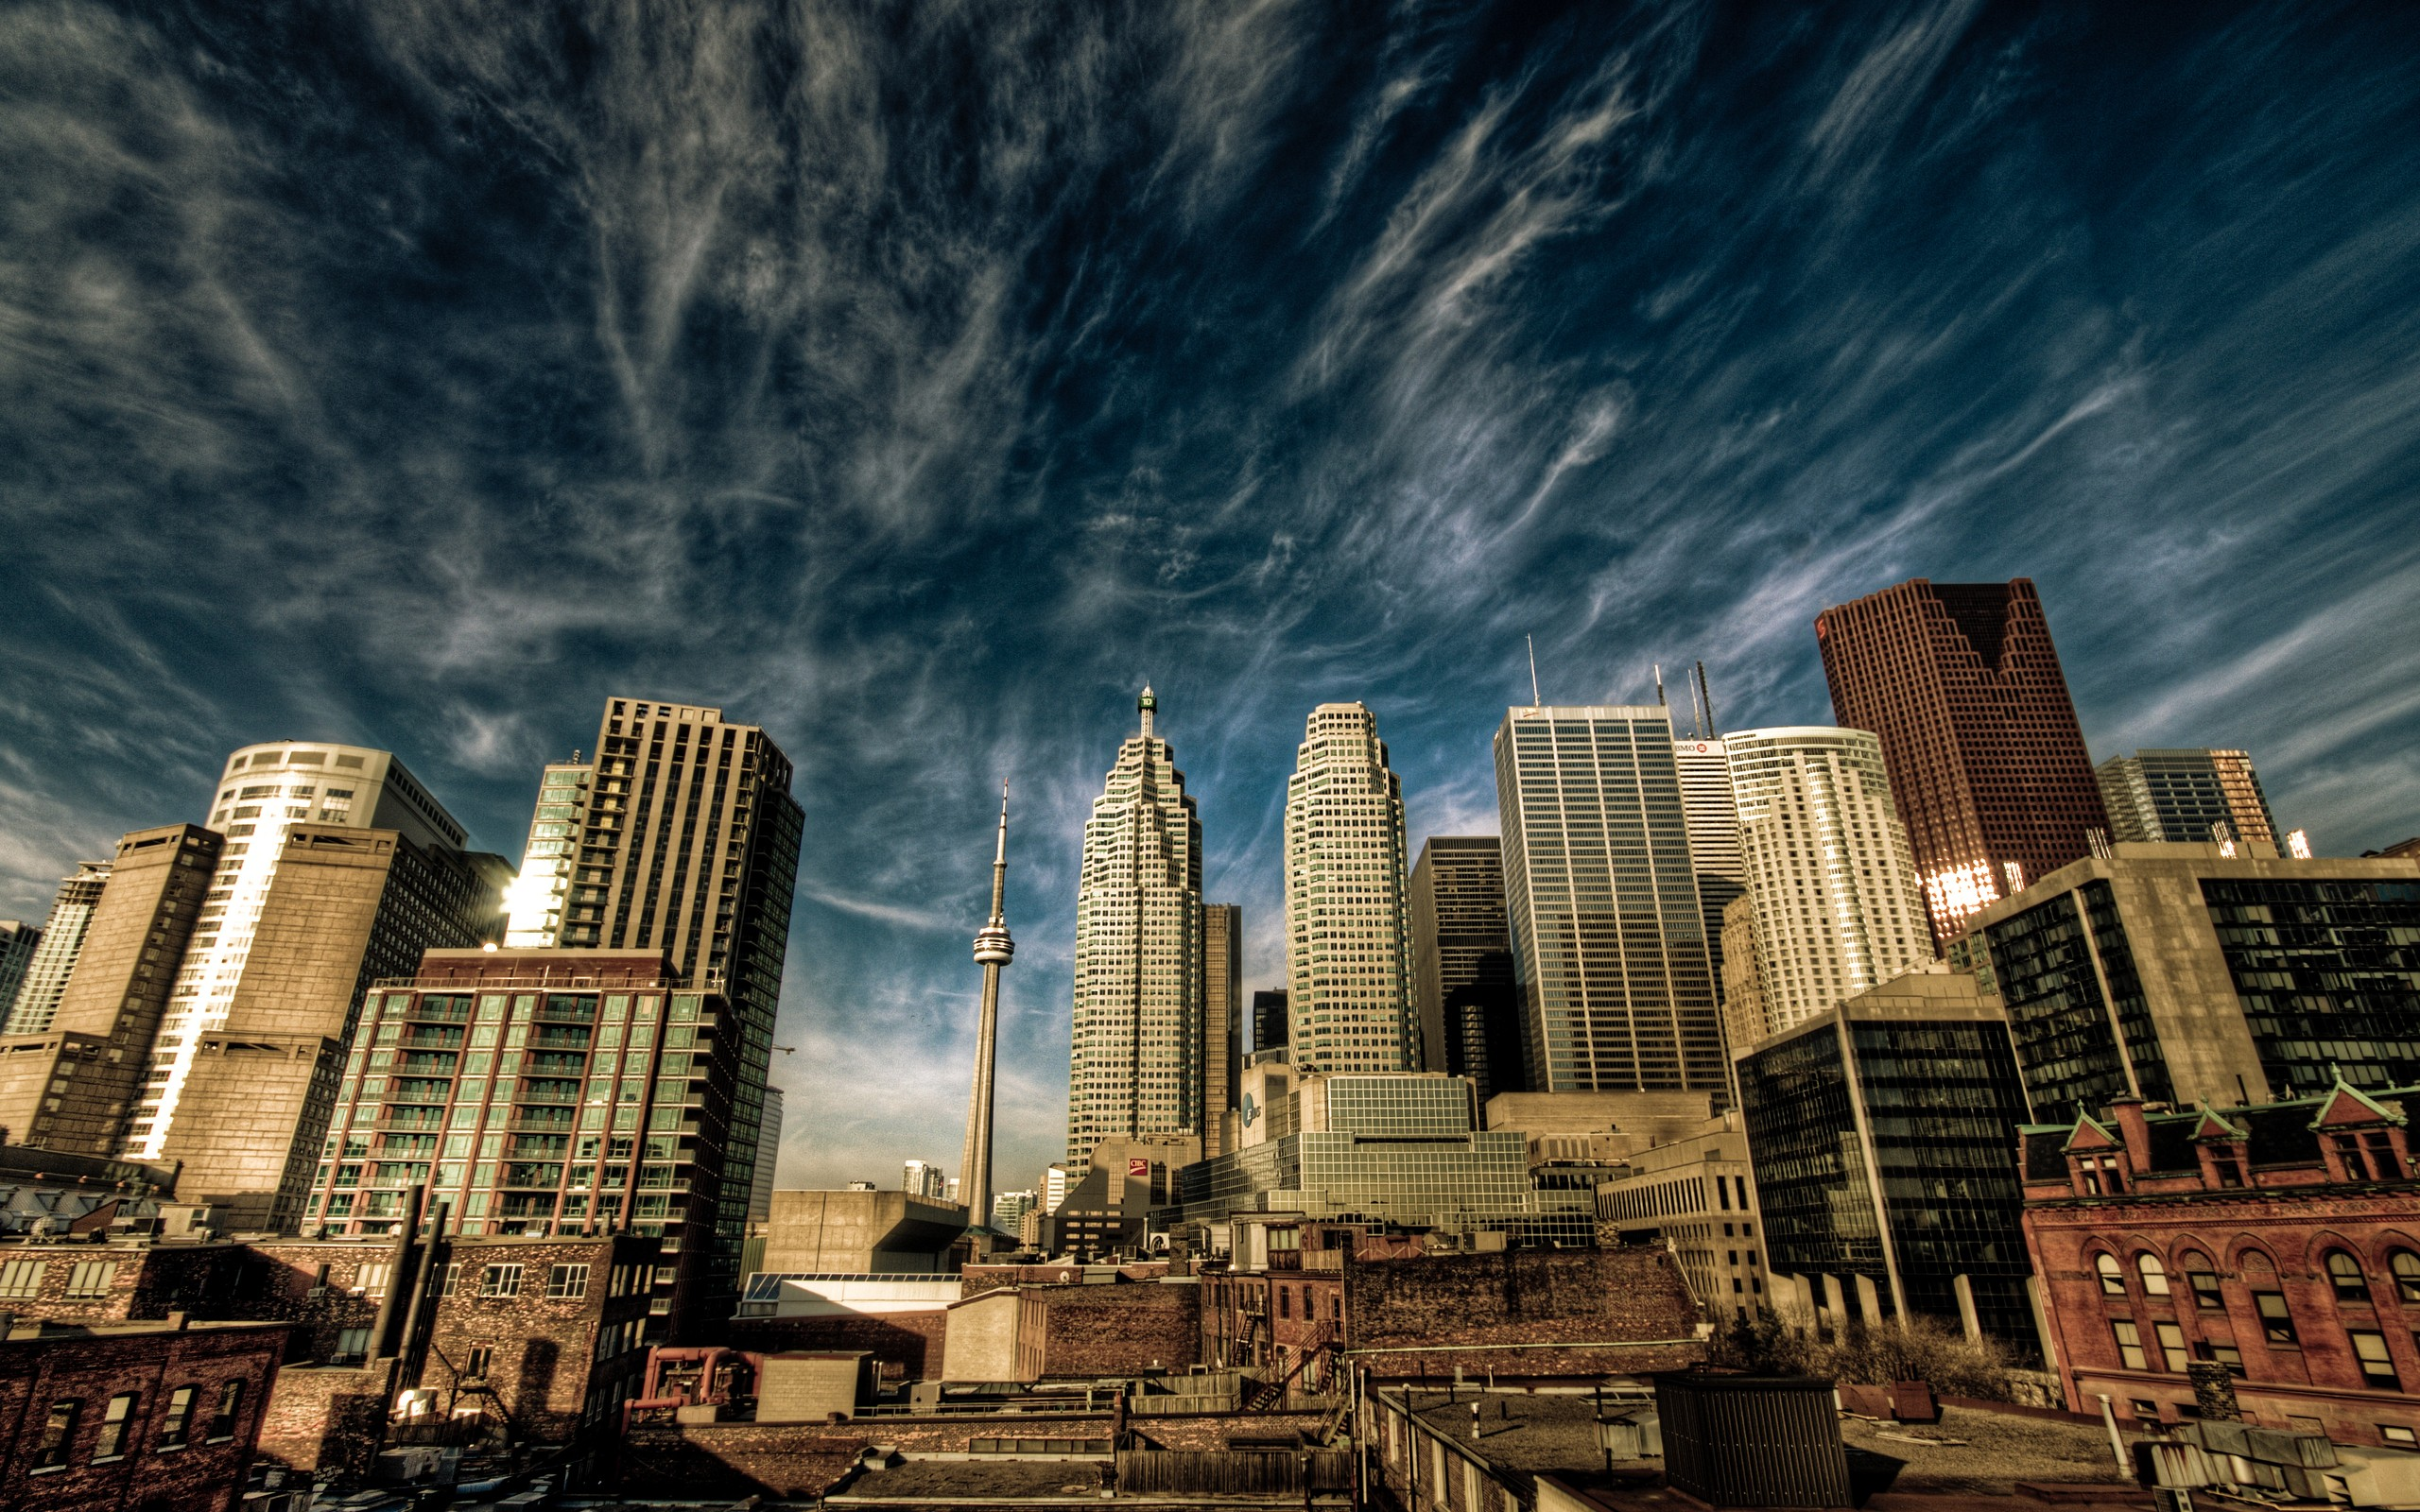 clouds, cityscapes, buildings, Toronto, HDR photography, skyscapes ...